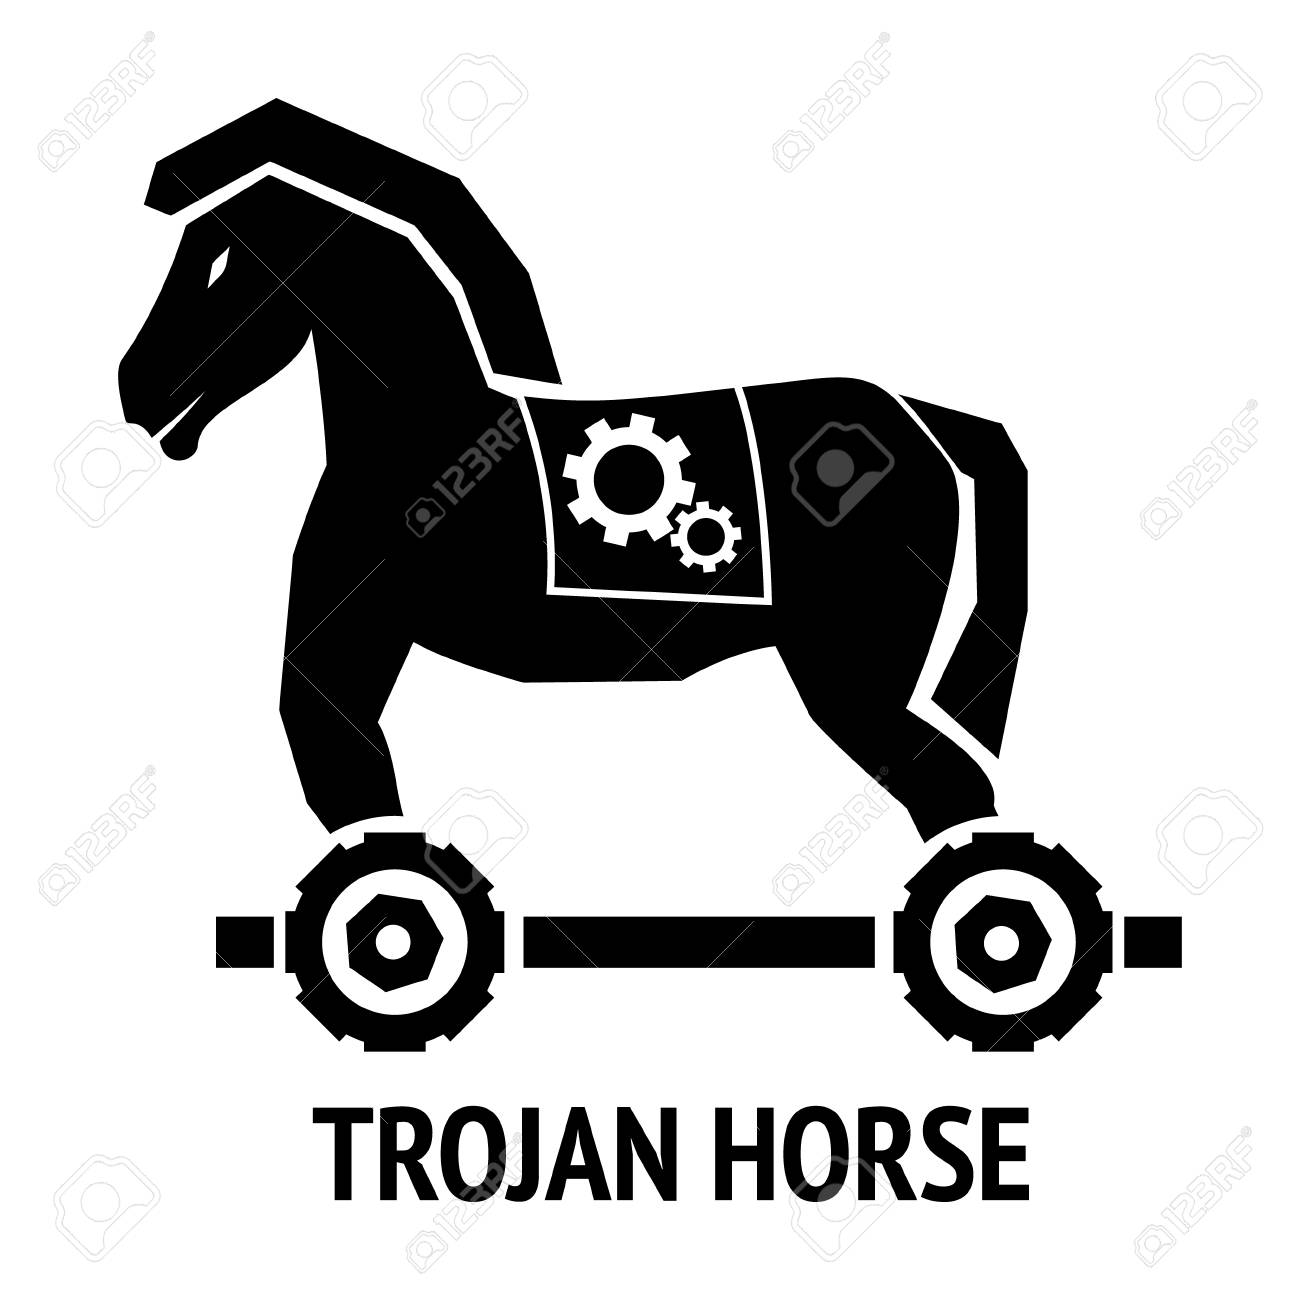 Trojan Horse Malware Virus Computer Sign Isolated On White Background Royalty Free Cliparts Vectors And Stock Illustration Image 92121463